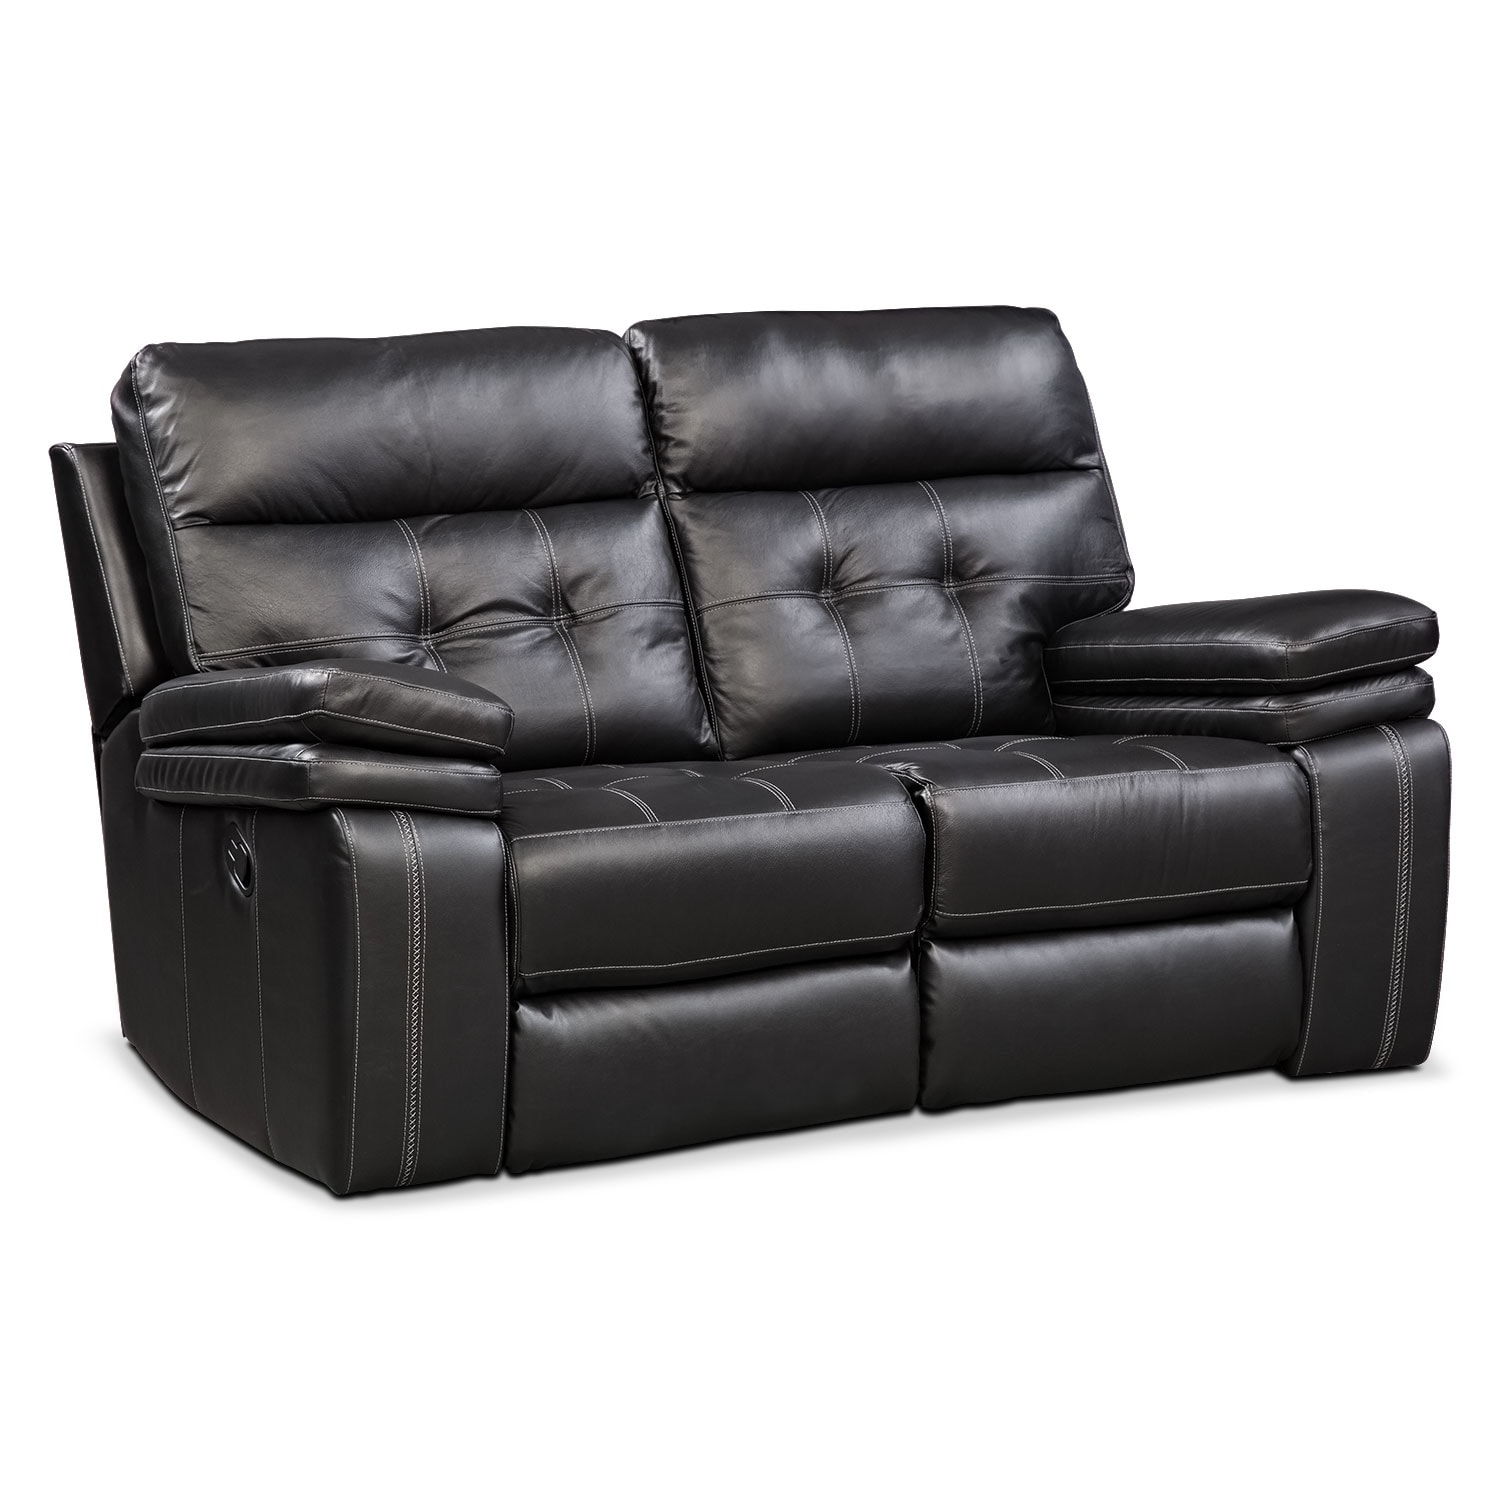 Awesome Brisco Manual Reclining Loveseat Frankydiablos Diy Chair Ideas Frankydiabloscom